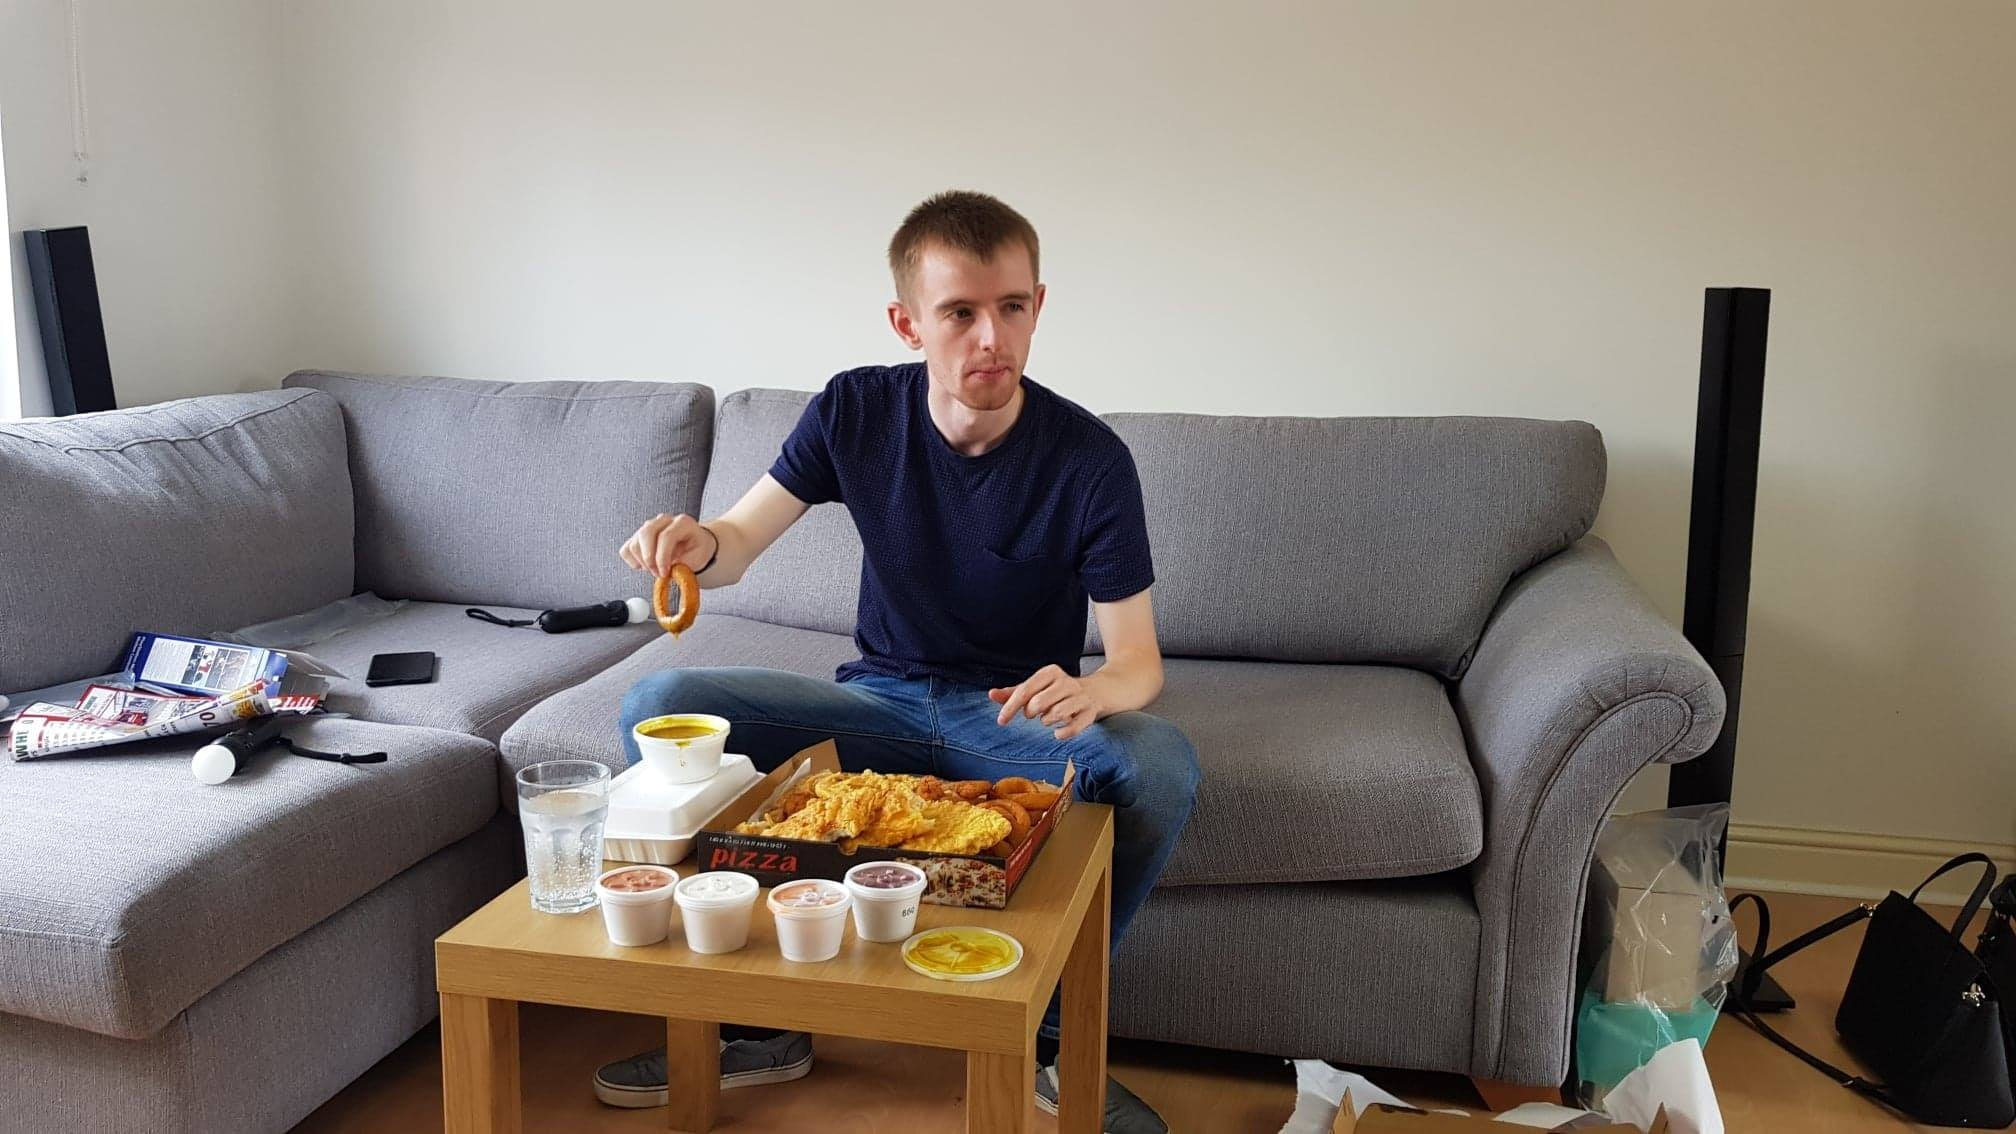 Glasgow TikTok star Dazza stuns guests with deep-fried dinner on Come Dine With Me